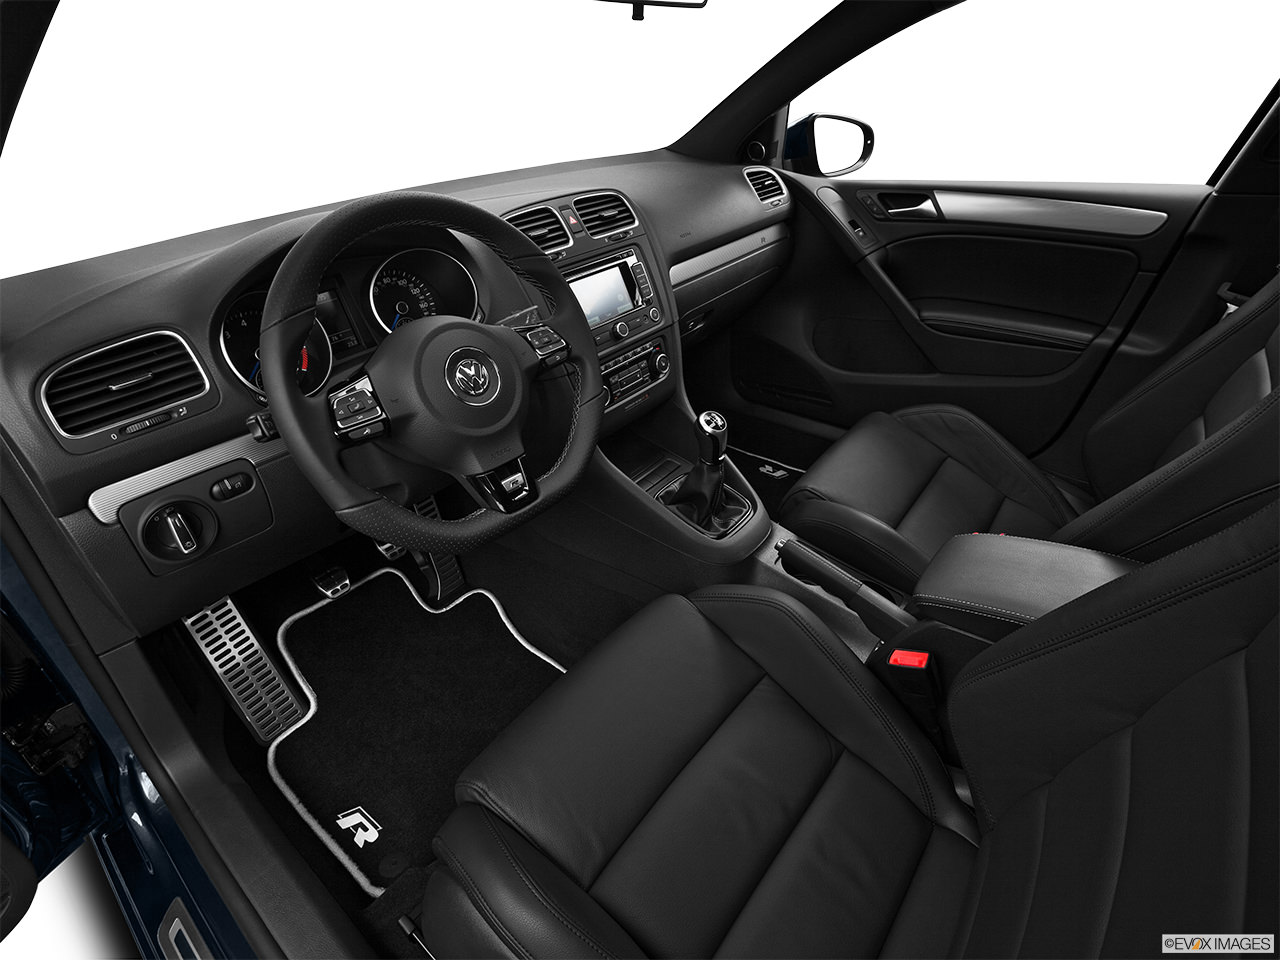 Volkswagen Golf R 2012 Interior